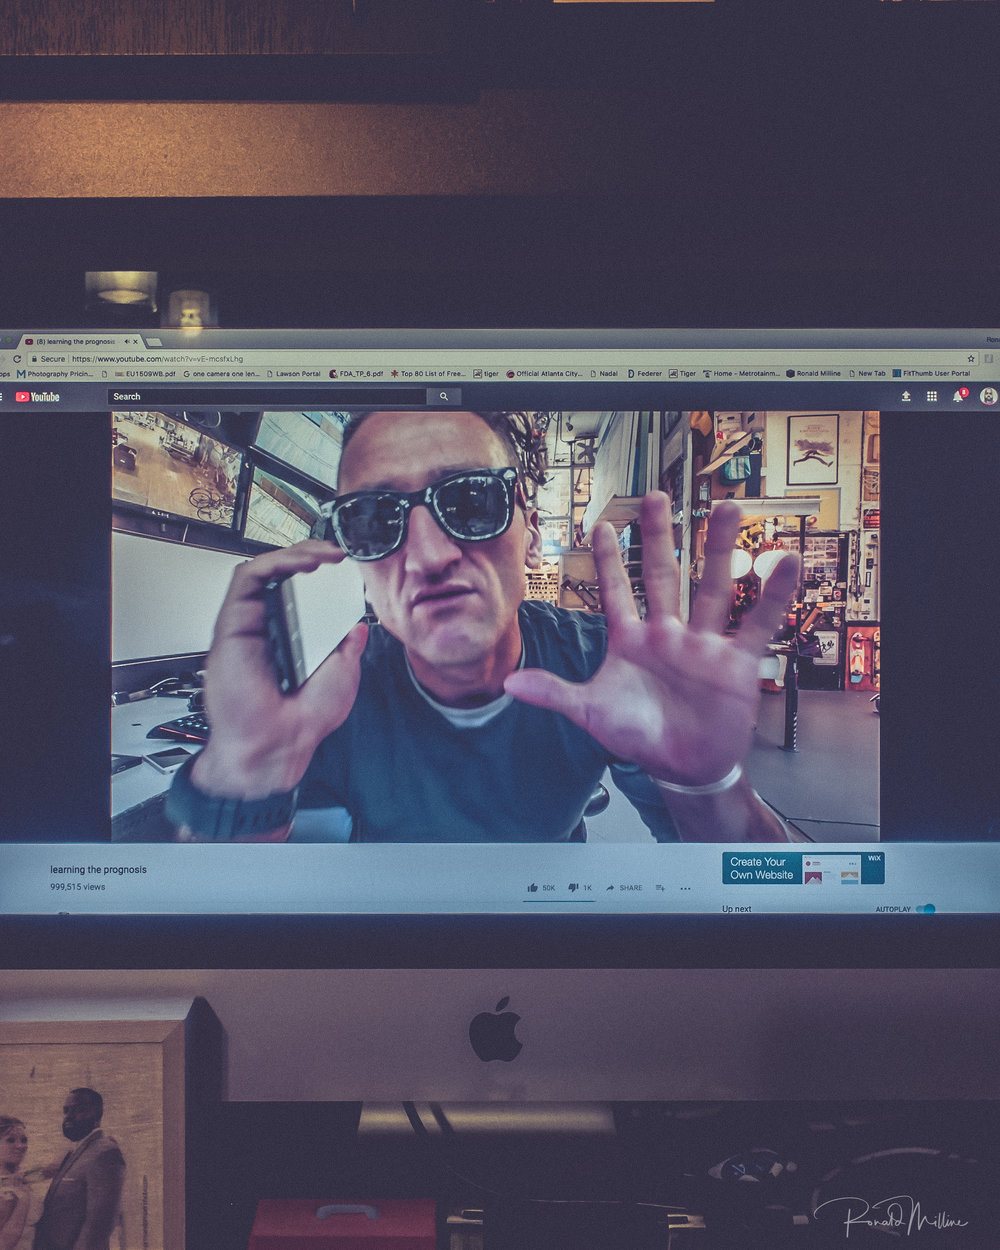 Casey Neistat is a Daily Vlogger on YouTube, He's actually pretty well known now for his Vlogs.